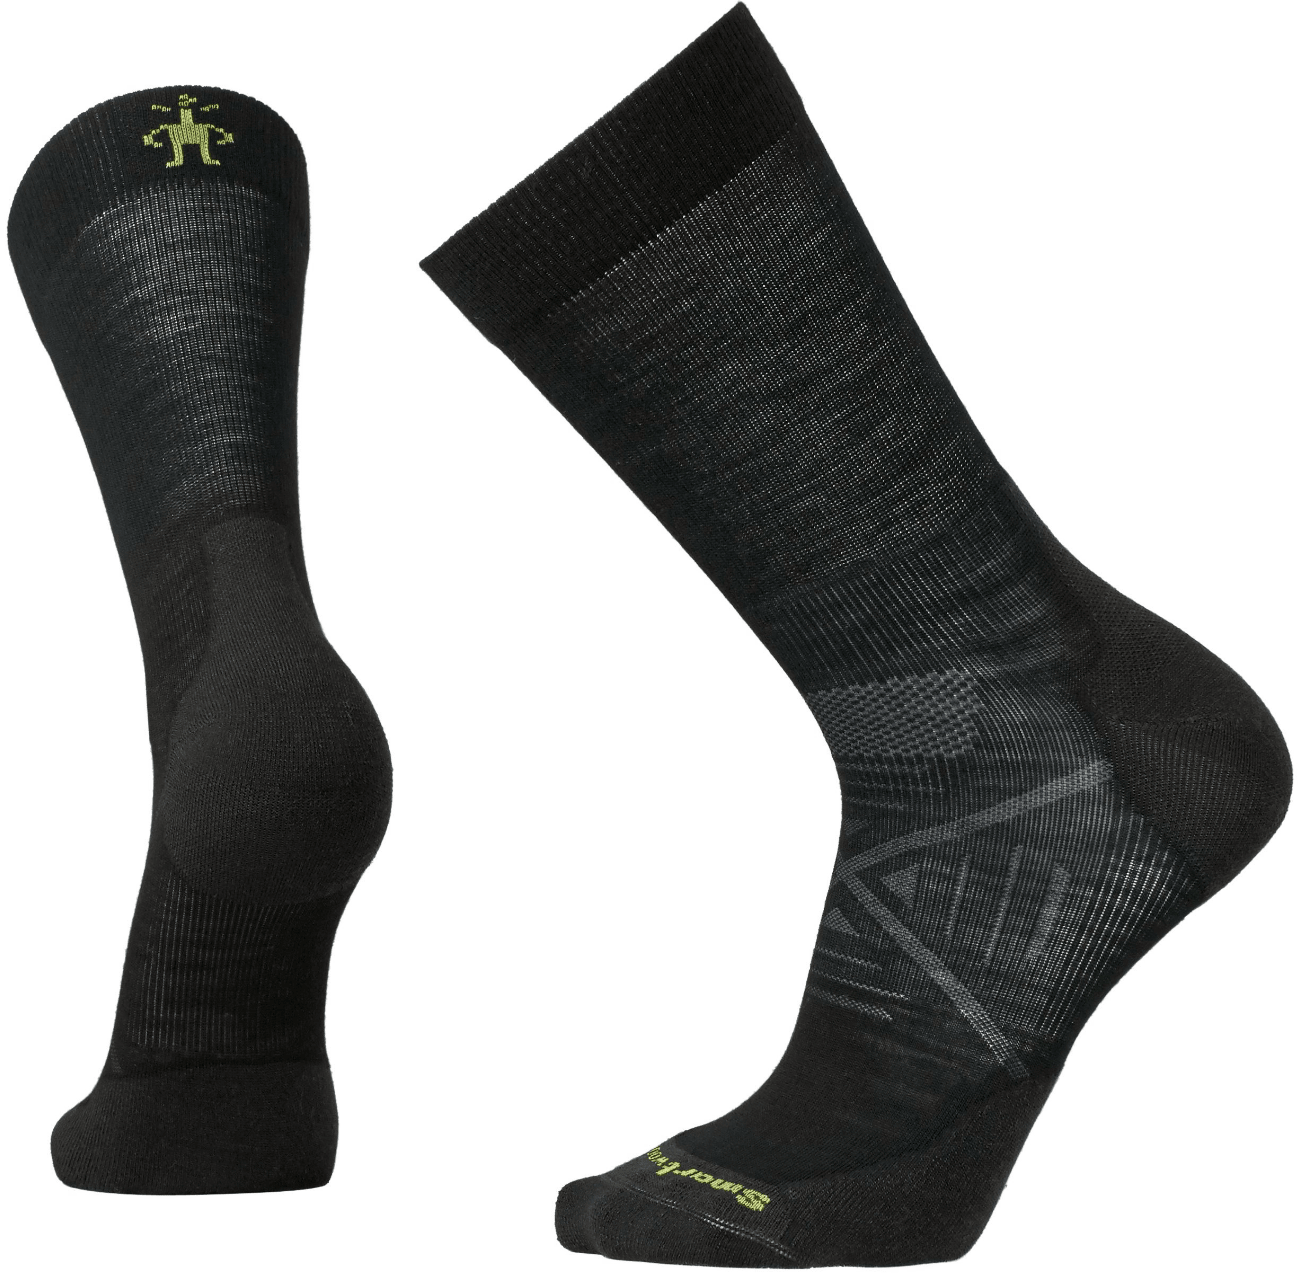 Smartwool PhD Nordic Light Elite Pattern Socks - thumbnail 1